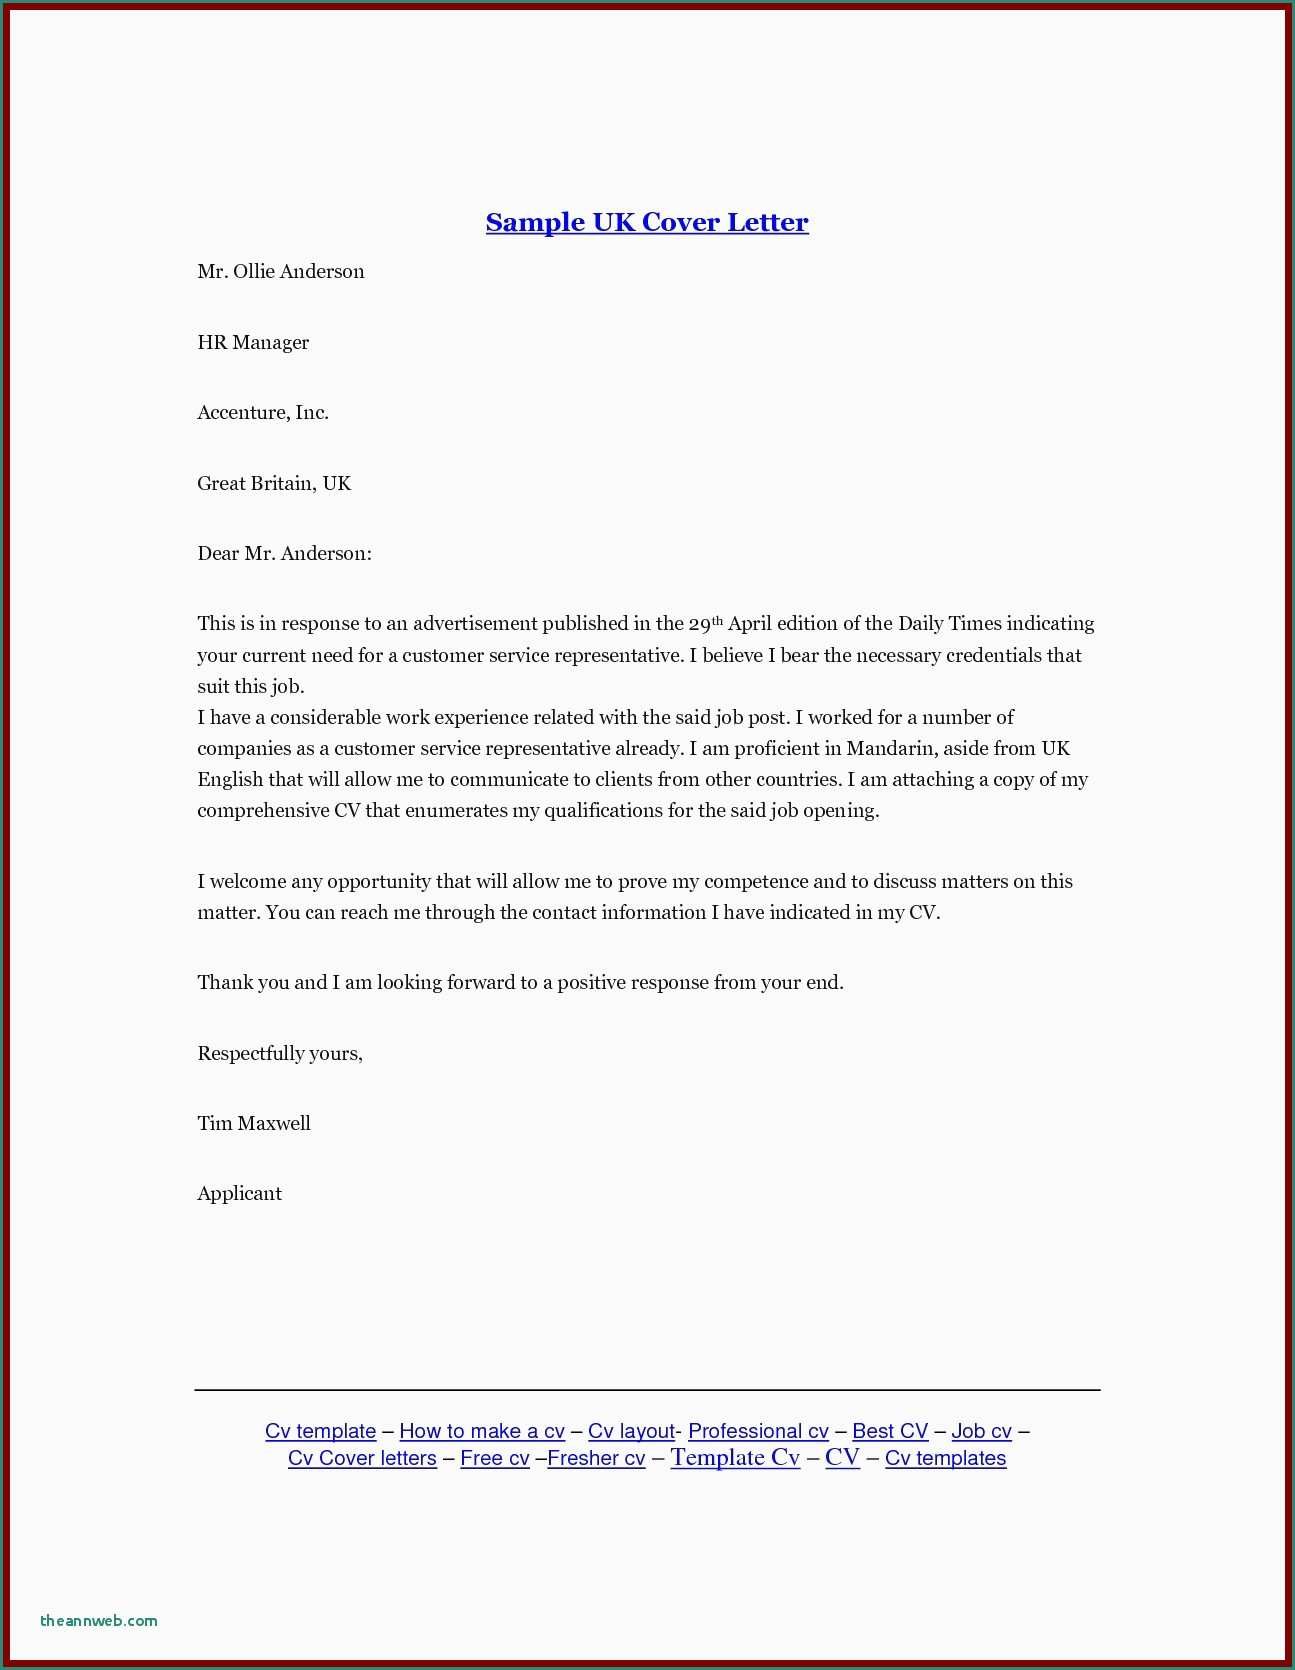 Resume and Cover Letter Template - the Informal Letter format Bank Letter format formal Letter Template